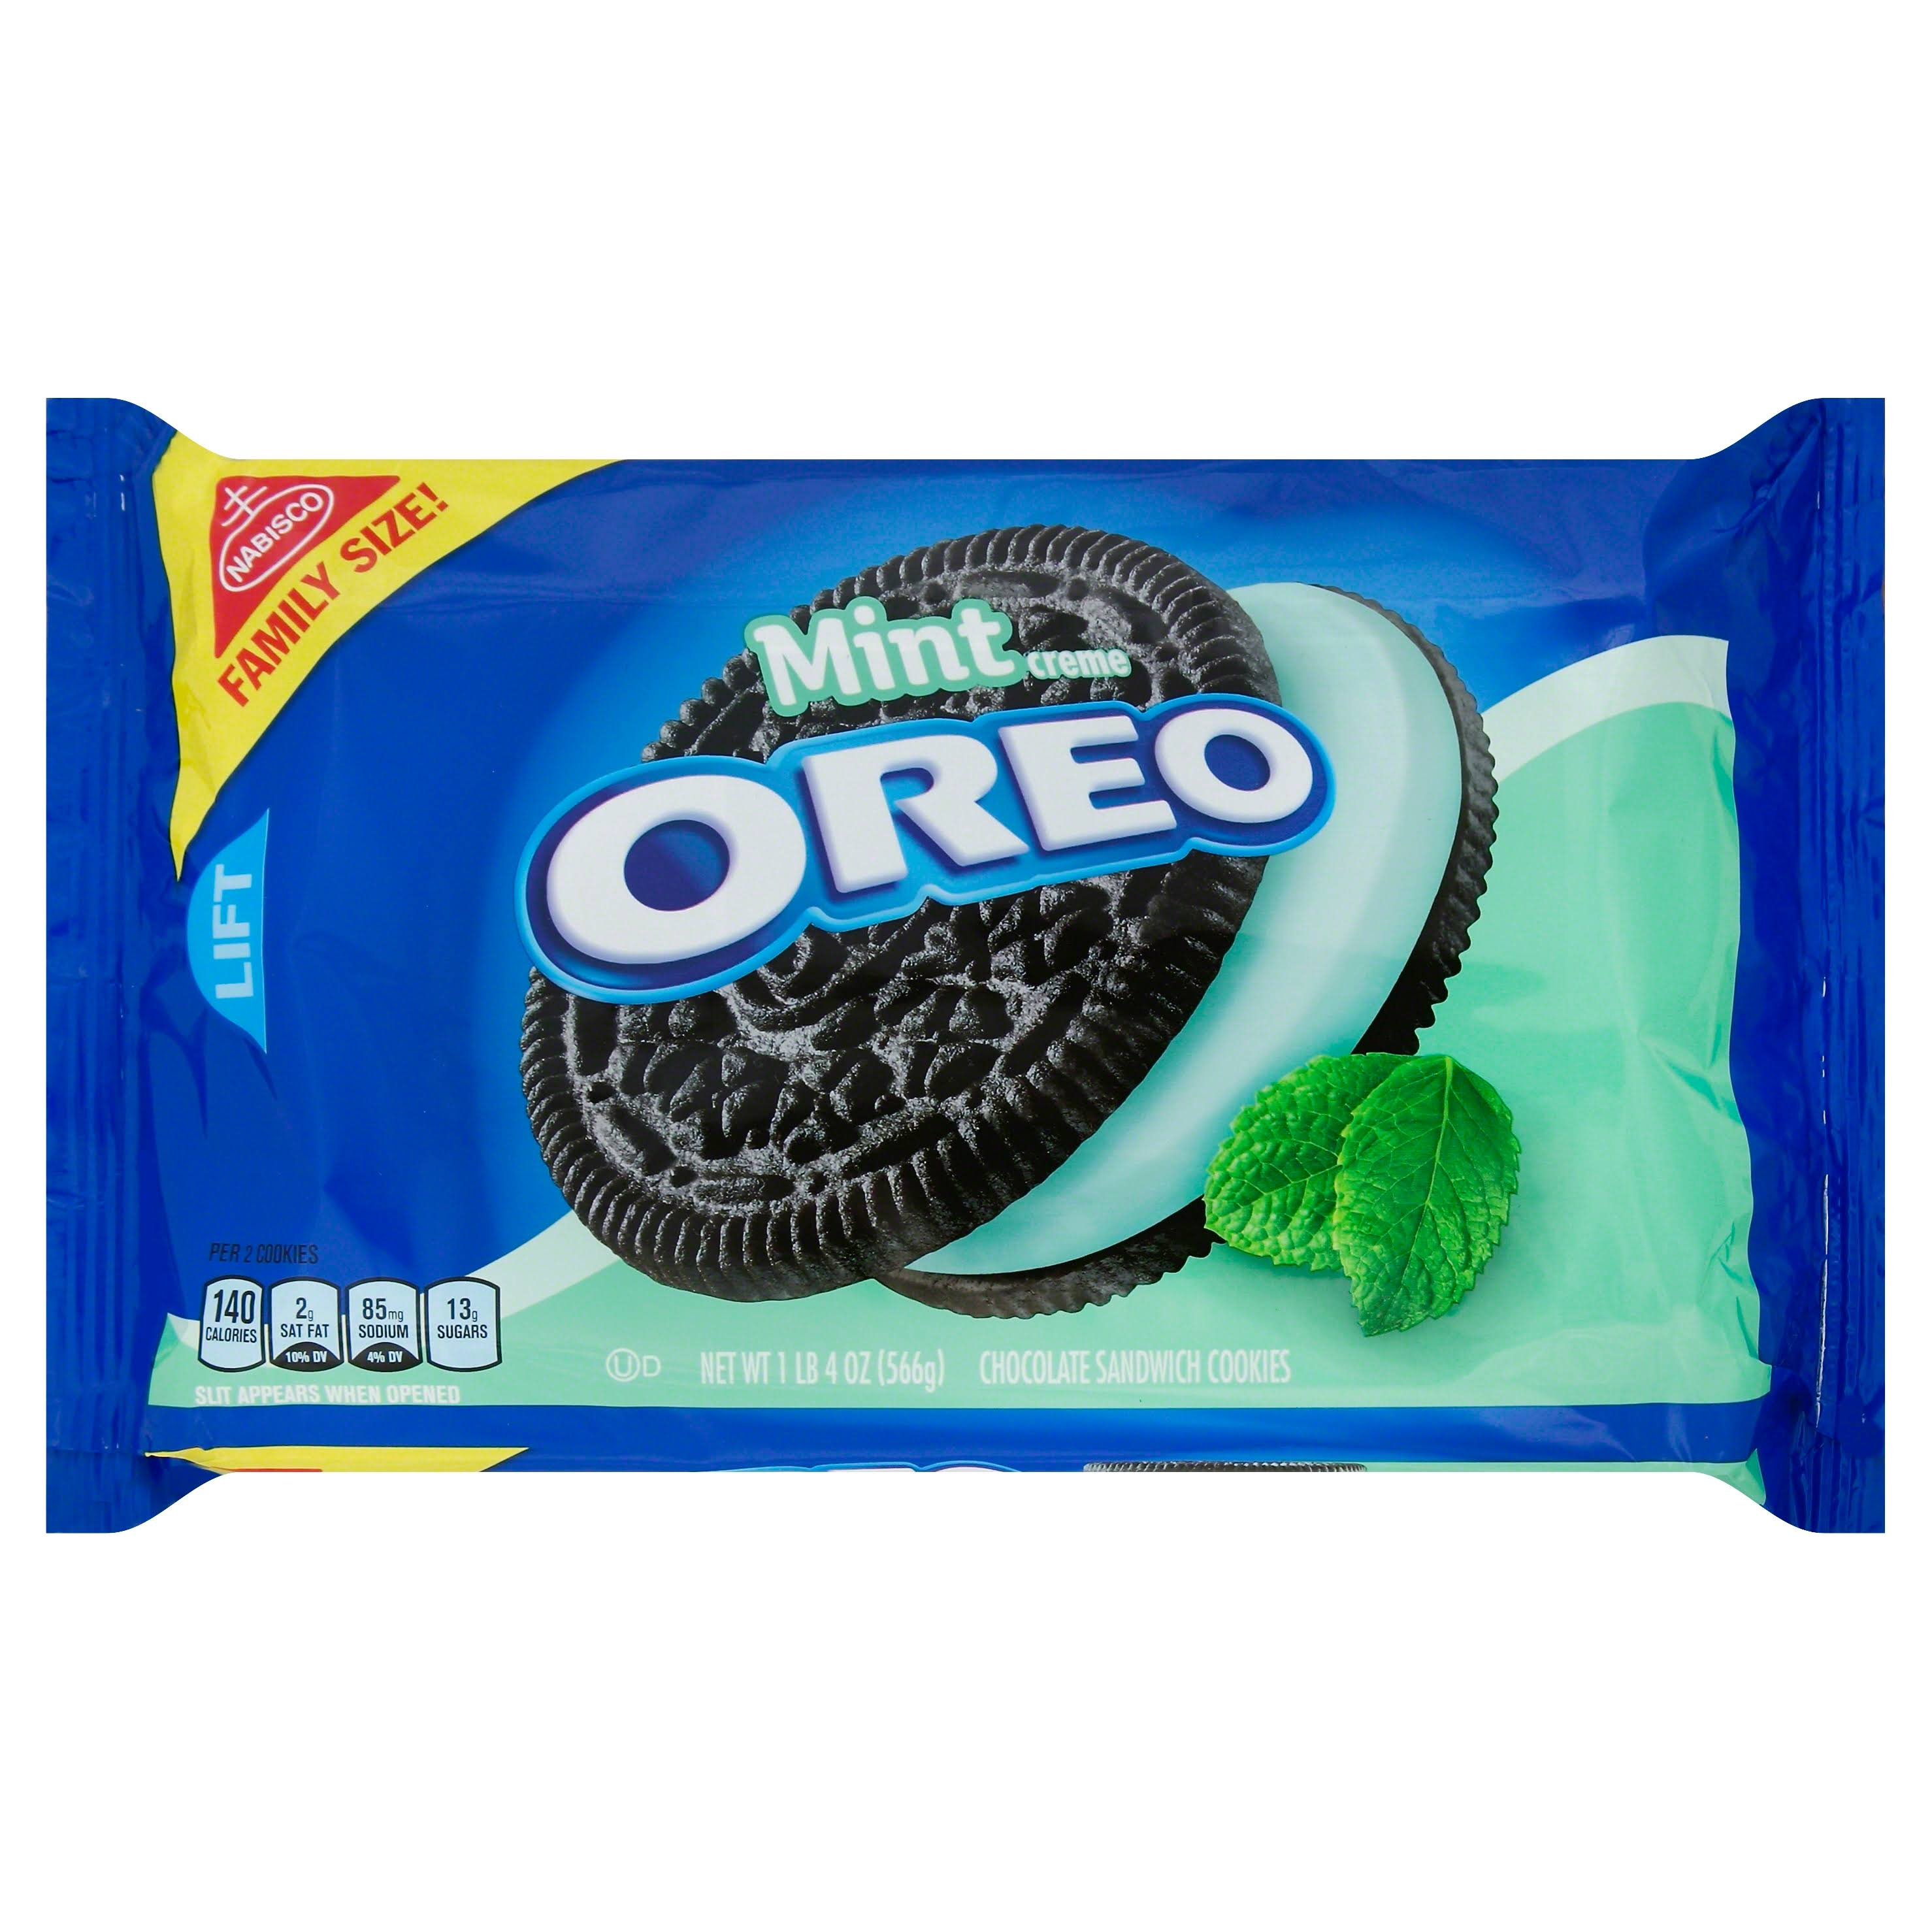 Nabisco Oreo Mint Creme Chocolate Sandwich Cookies - Family Size, 20oz